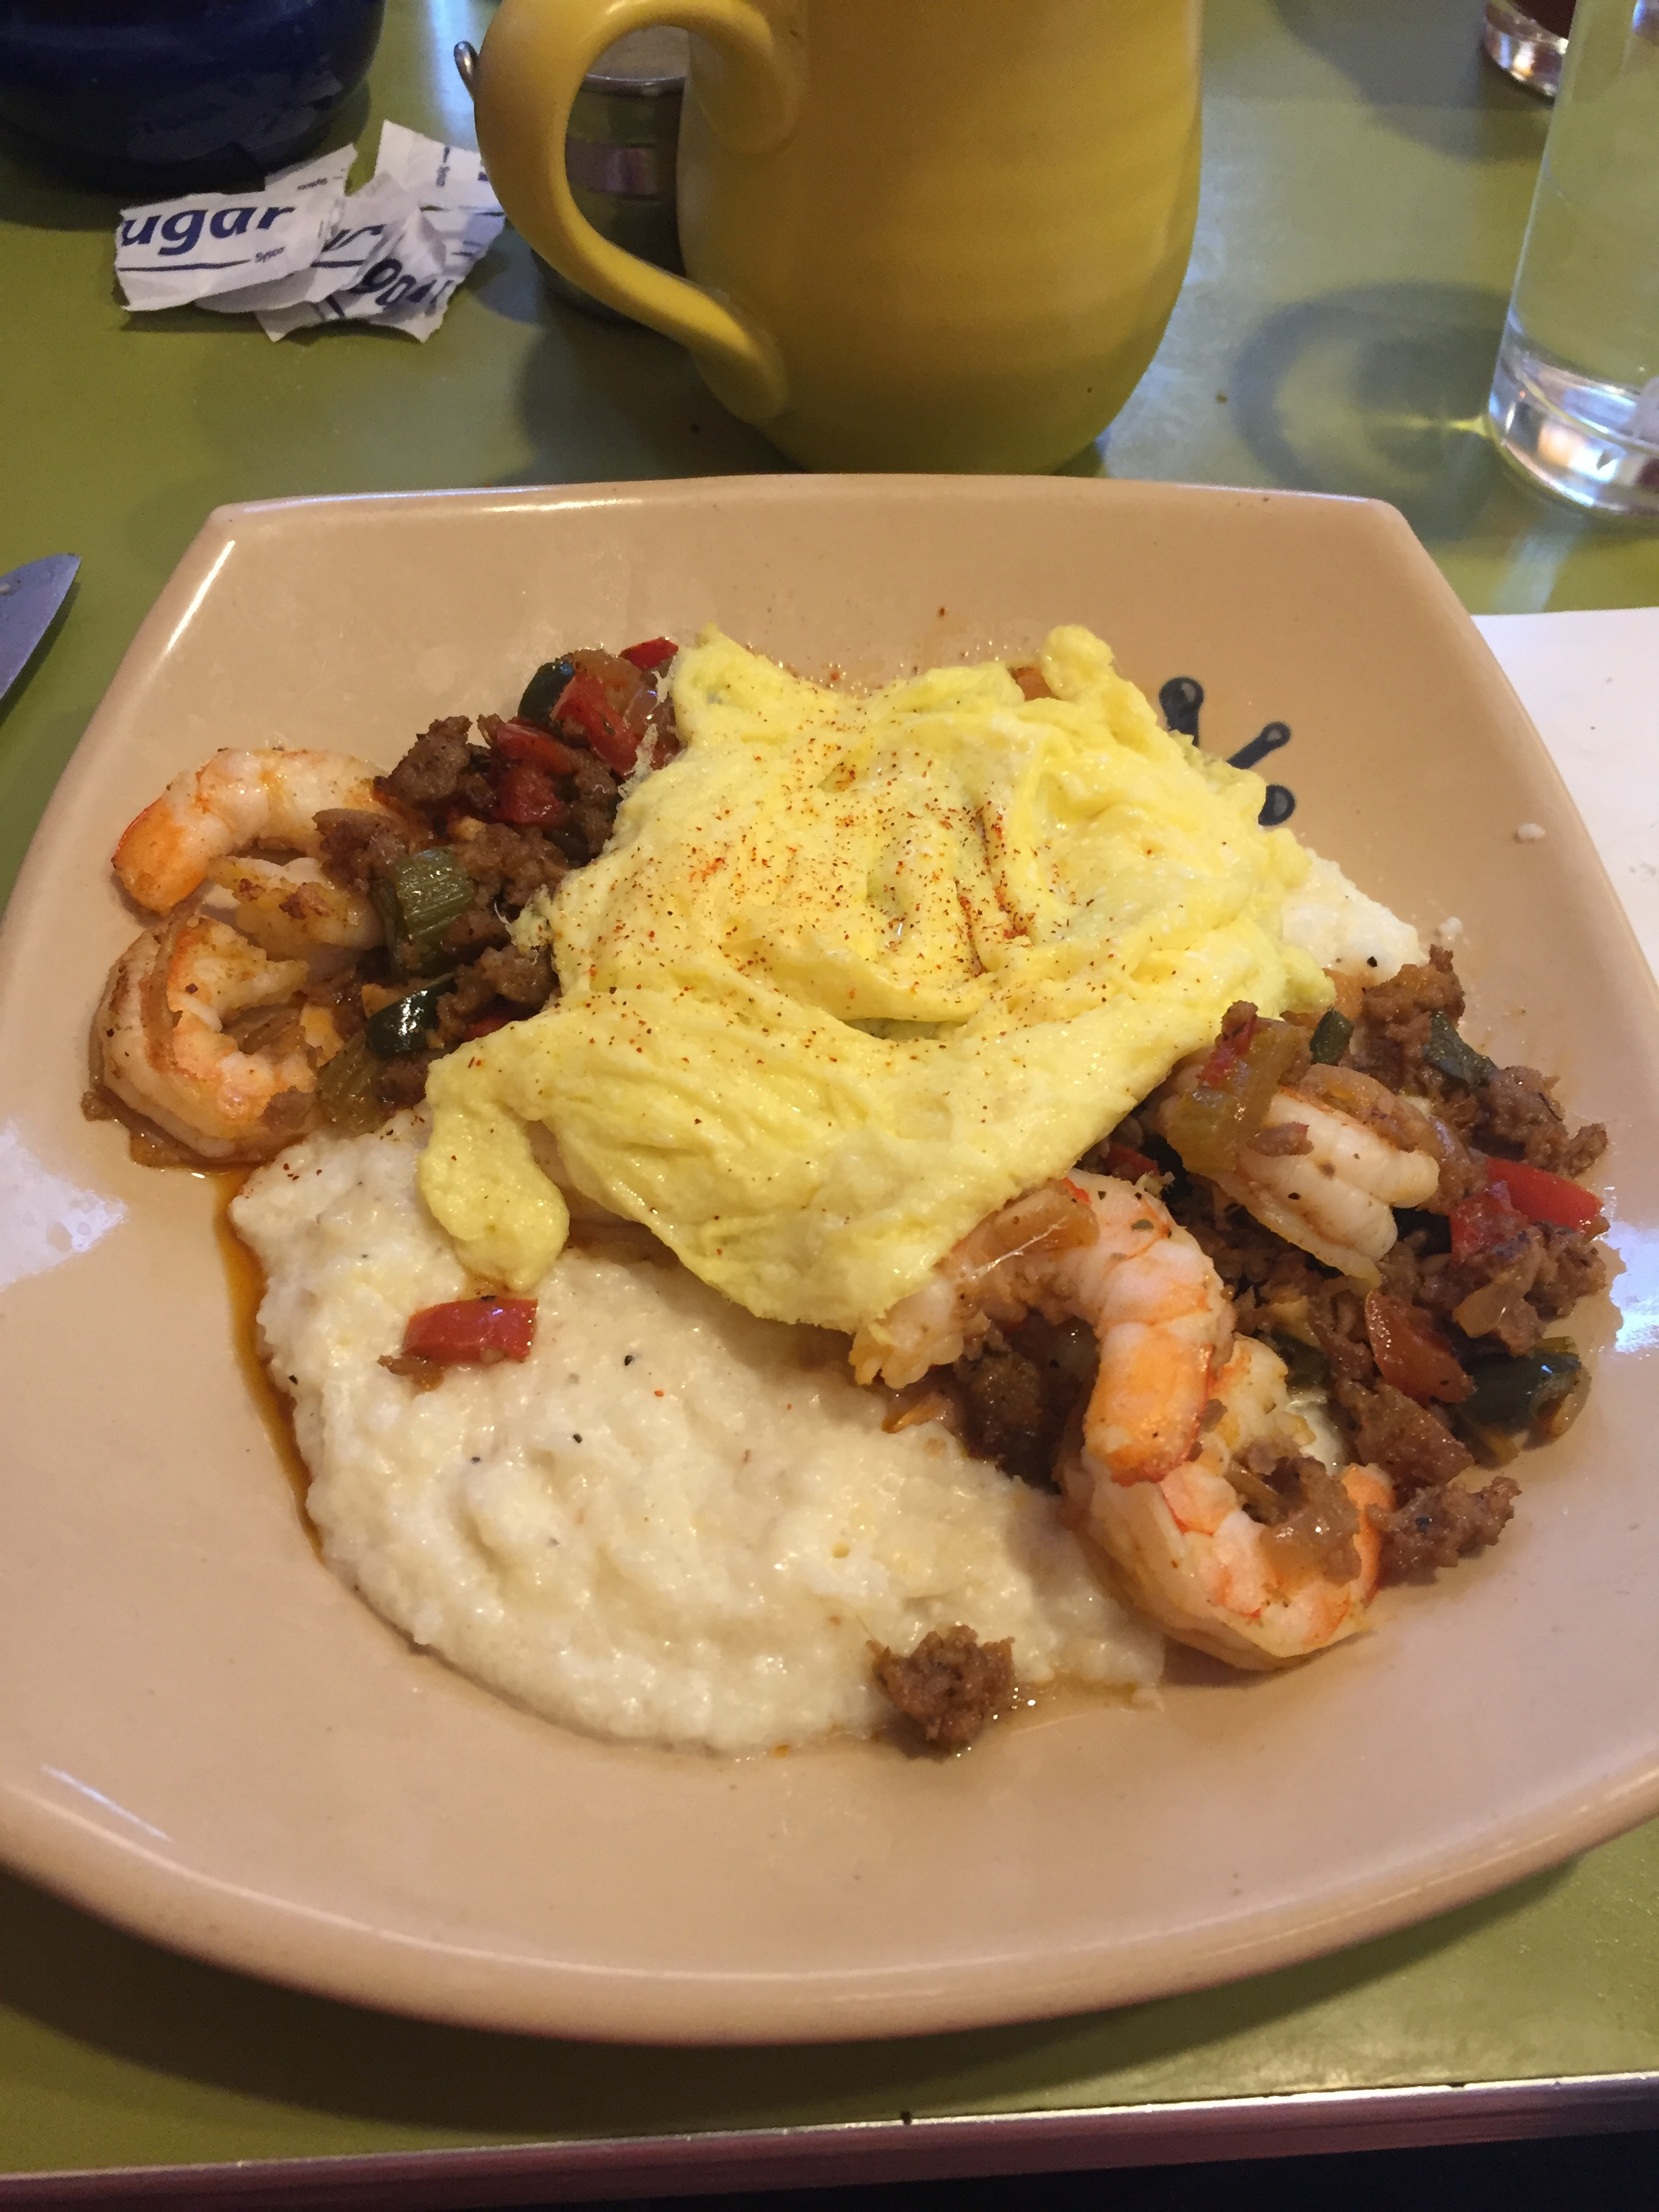 Shrimp and grits do not need eggs. They are glorious as they are. (And these were glorious.)